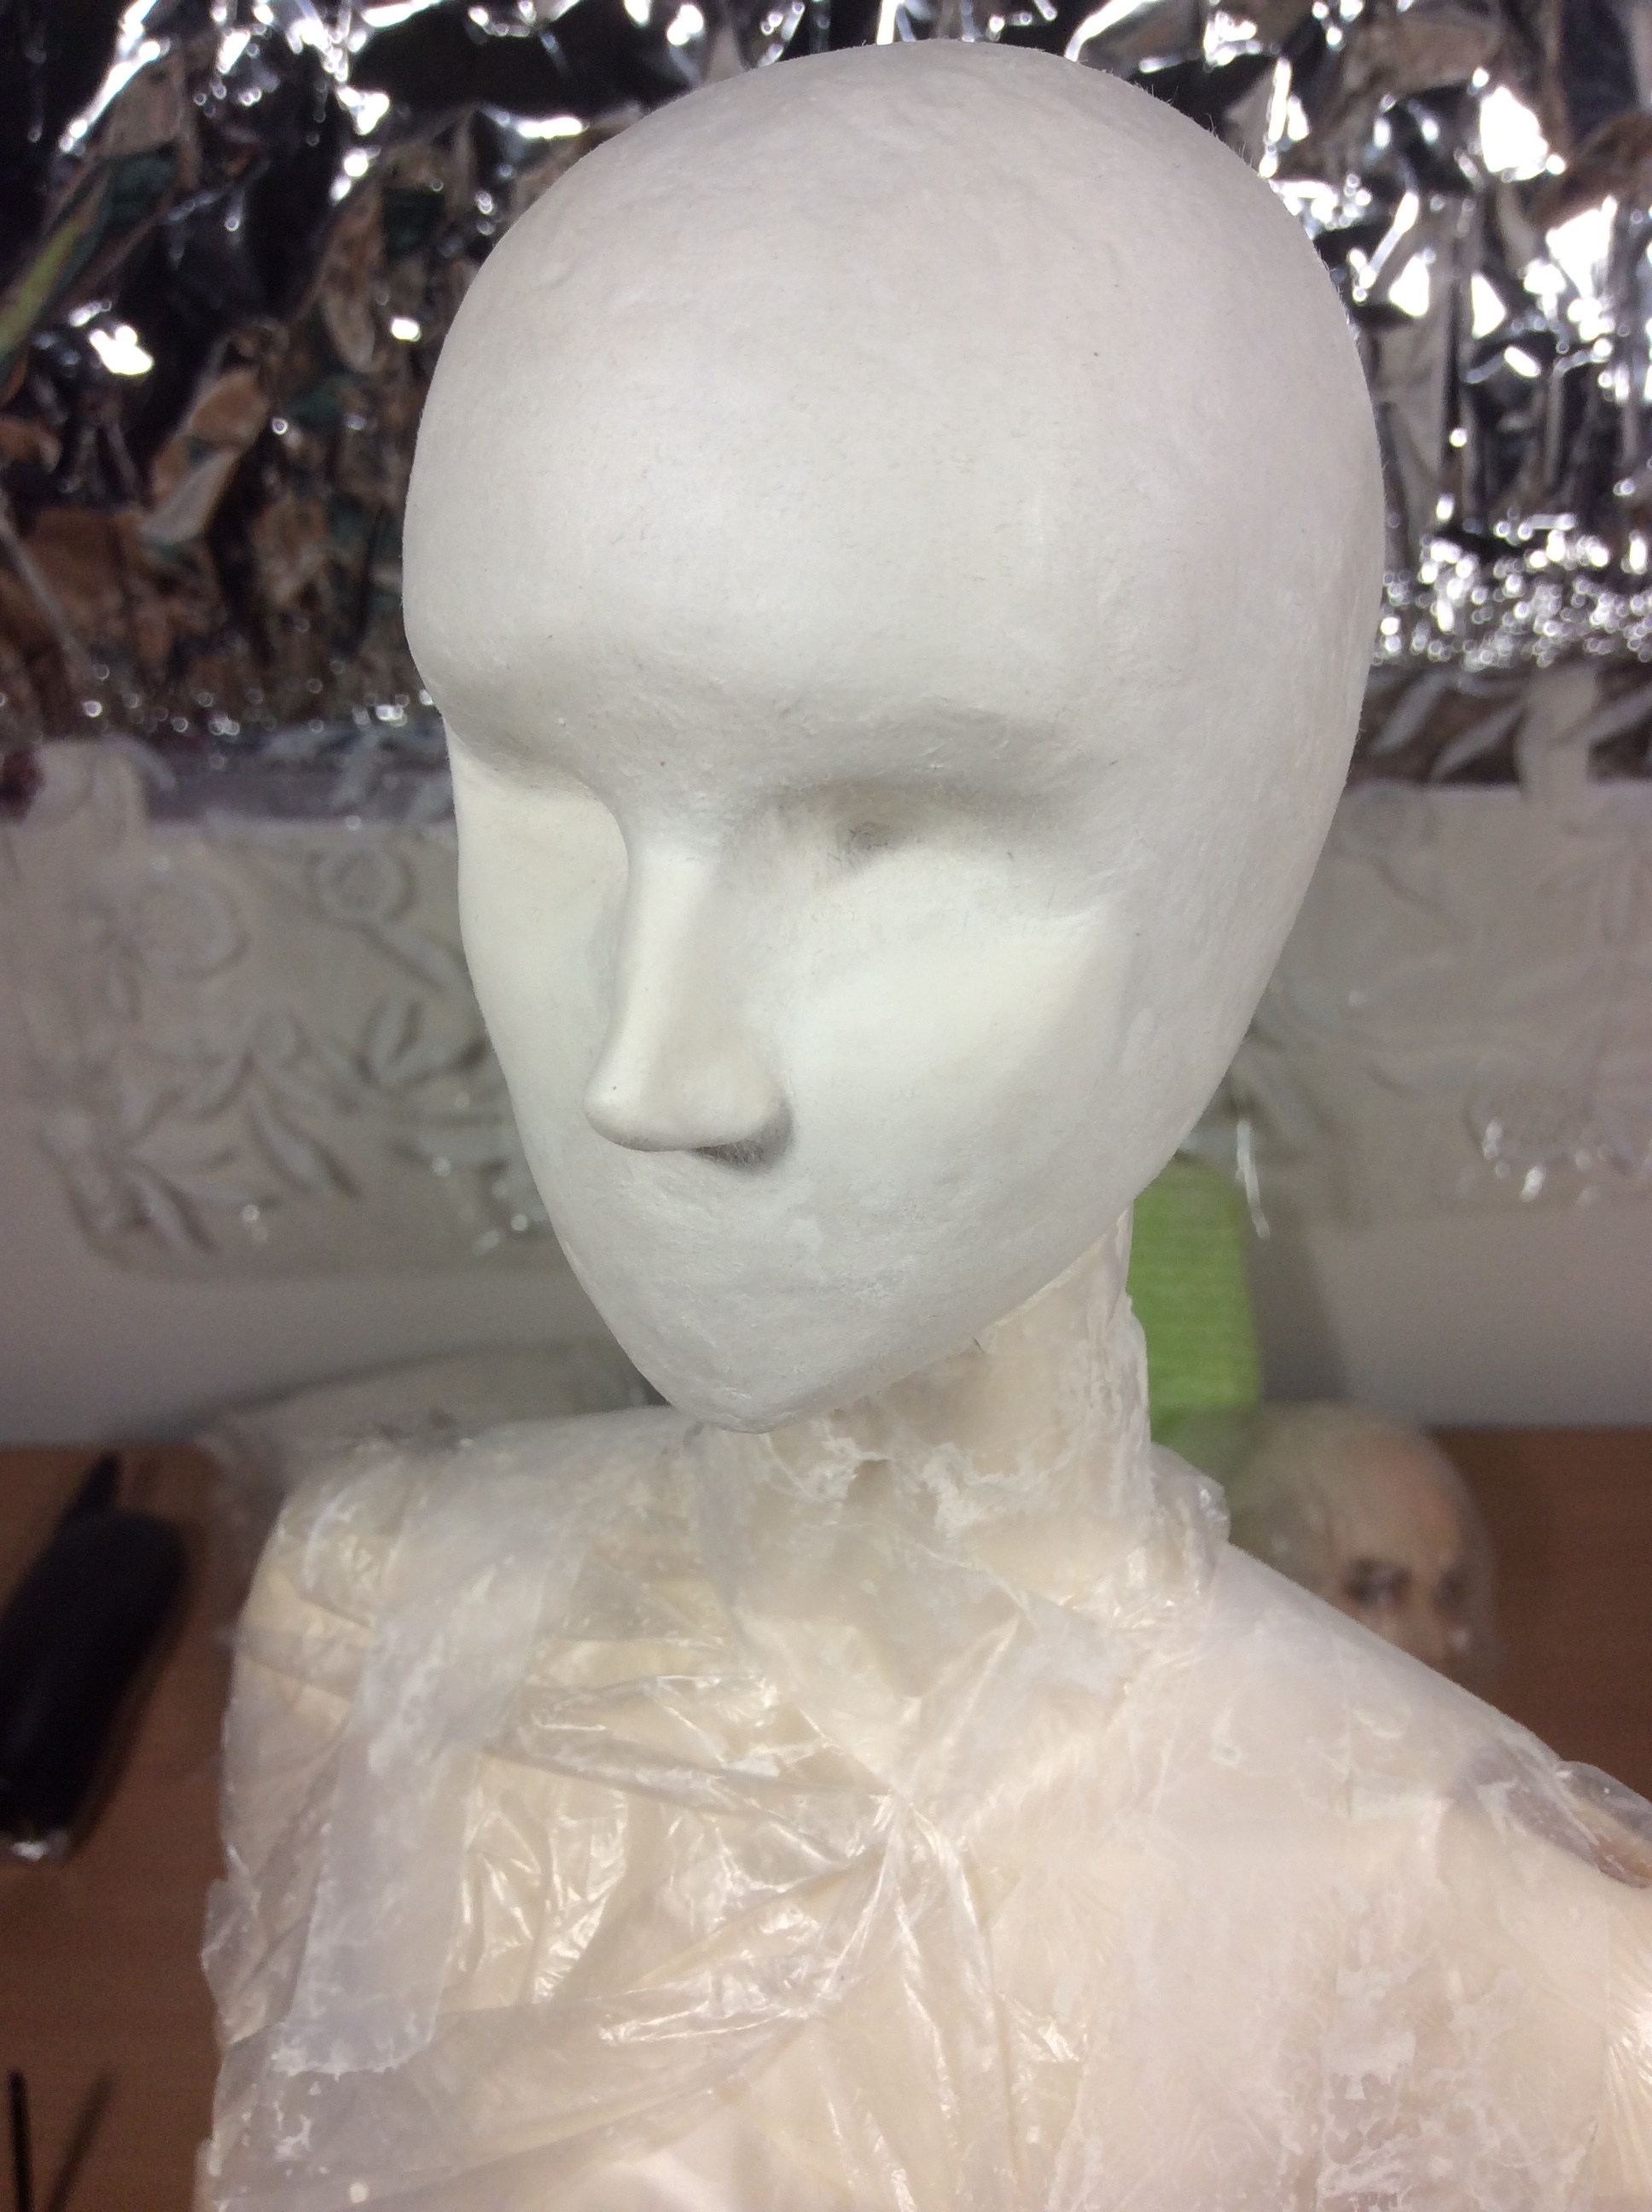 jemse---my-first-doll-head-making-progress-diary-part-1_31570927884_o